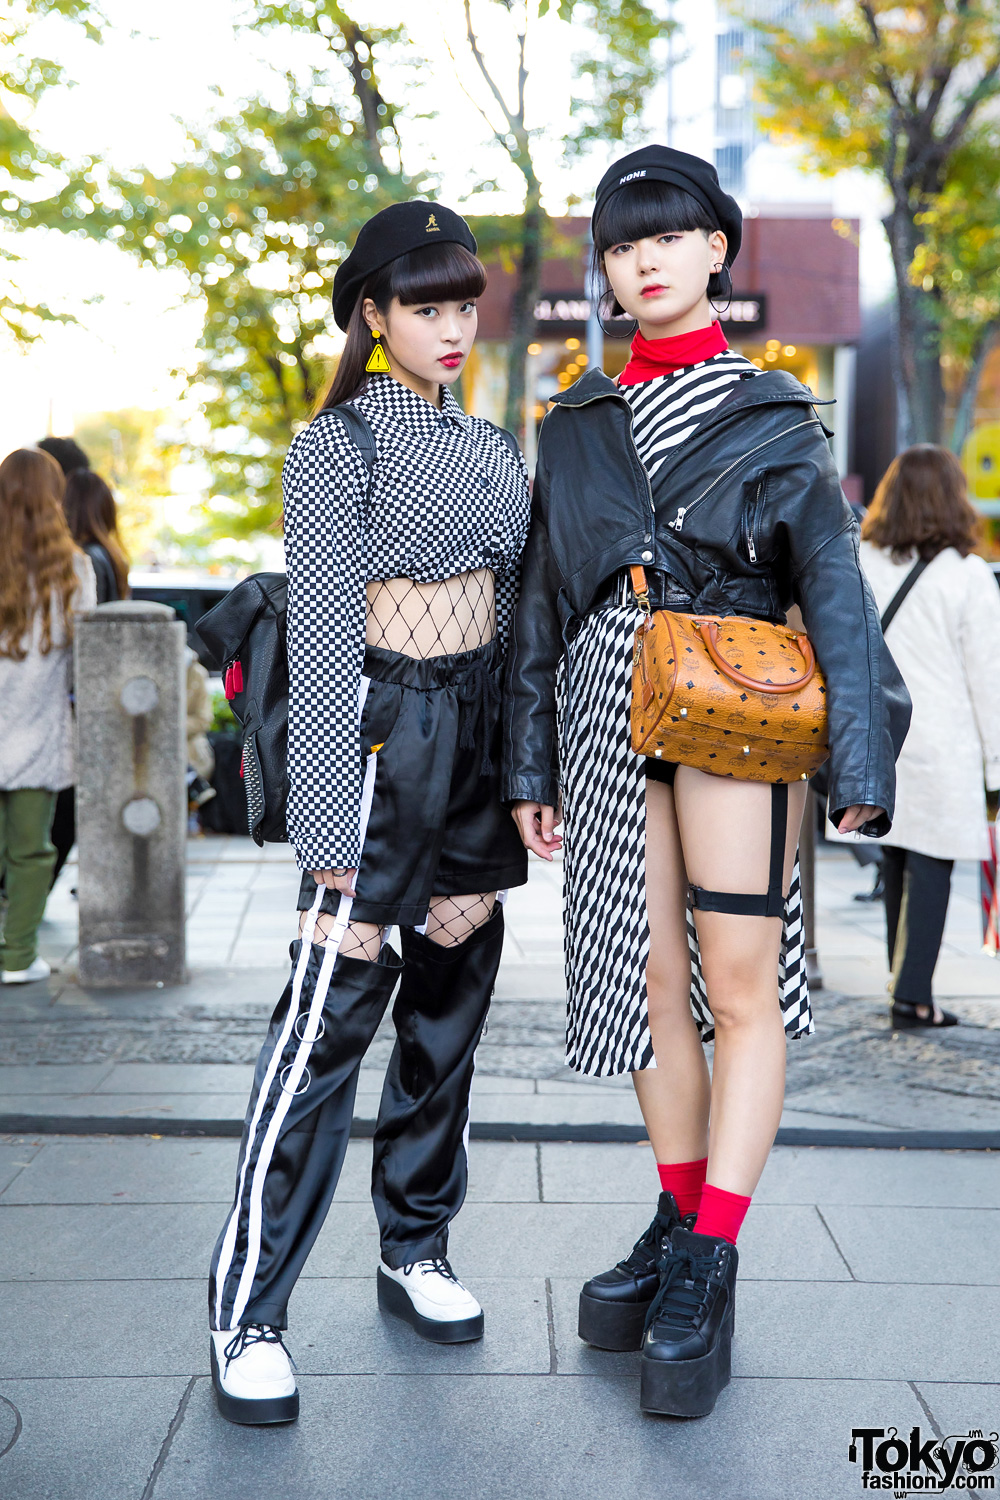 Harajuku Girls In Monochrome Streetwear Styles W Open The Door One Spo Kinji Yru Bubbles Mcm